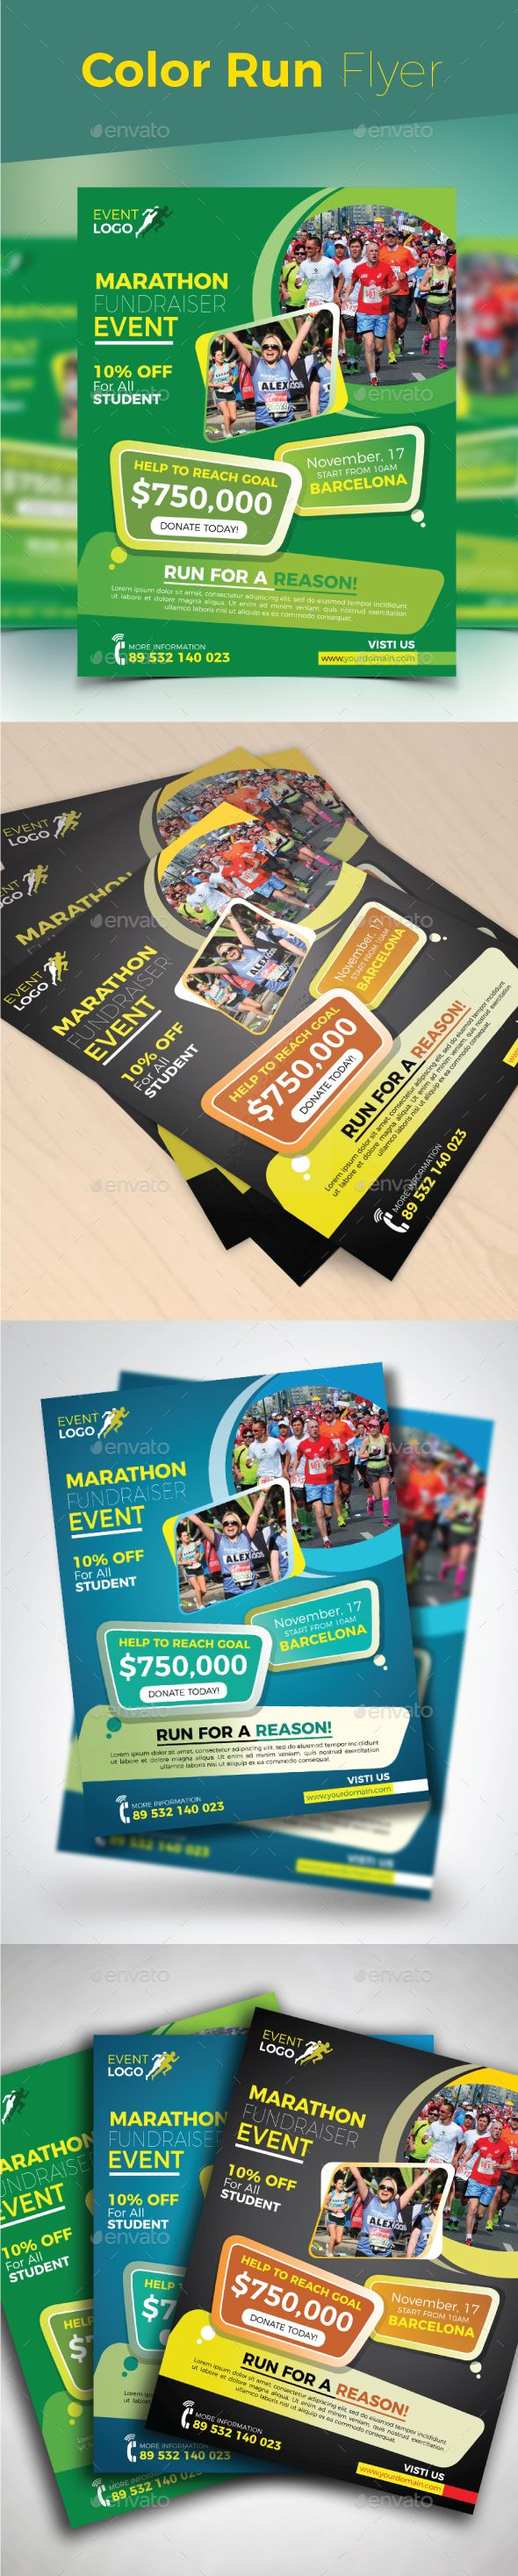 color run flyer ai illustrator flyer template and template